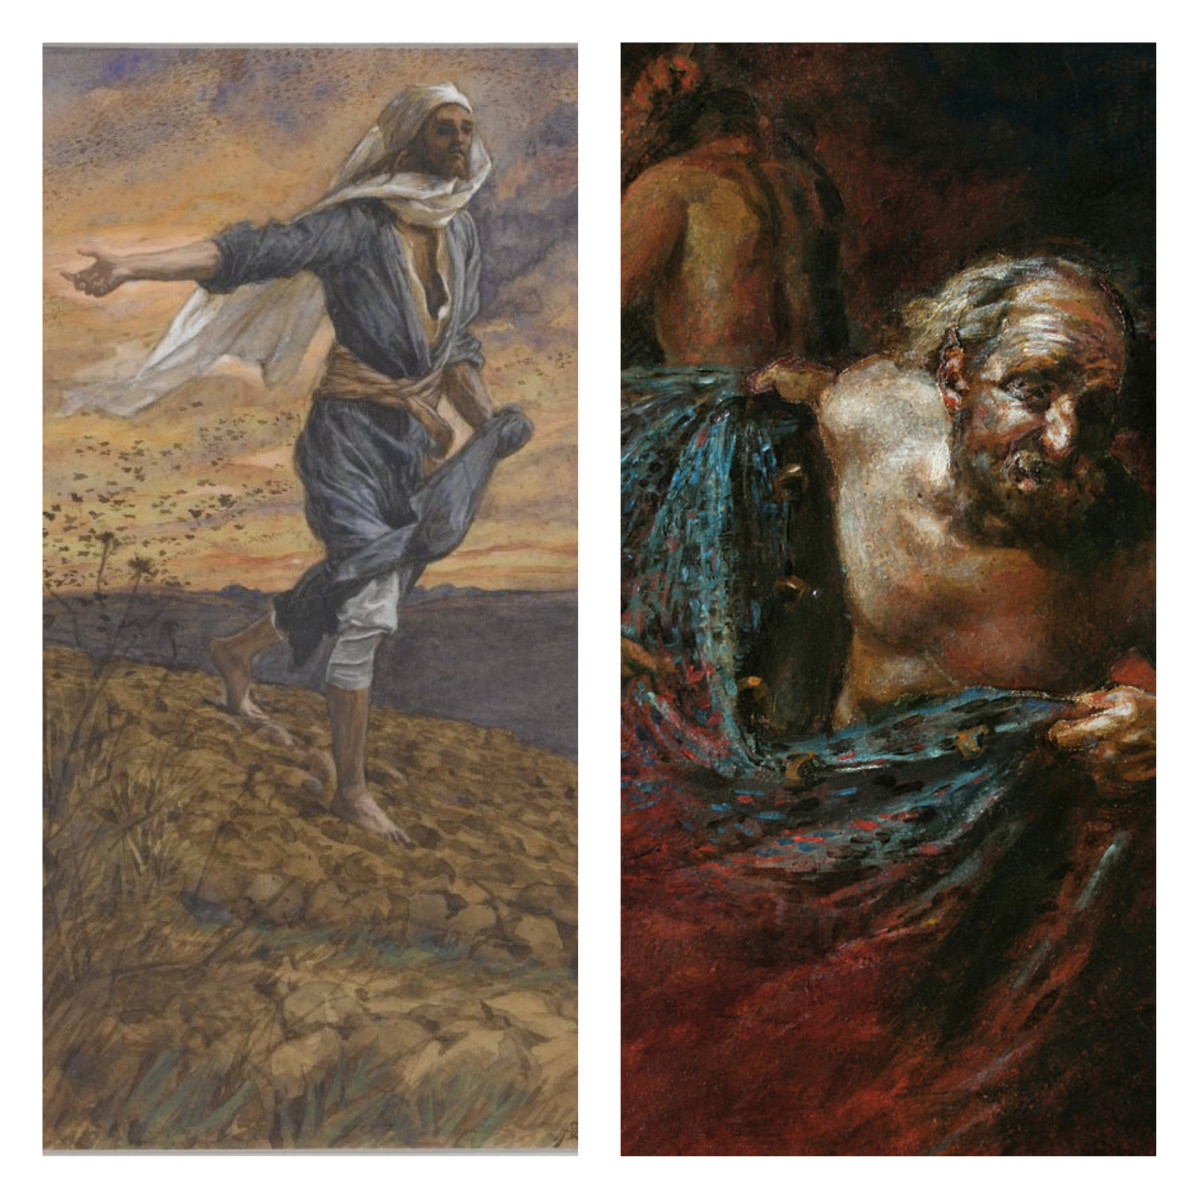 Left image by James Tissot. Right image By Andrey Mironov - Own work, CC BY-SA 4.0, https://commons.wikimedia.org/w/index.php?curid=29917801